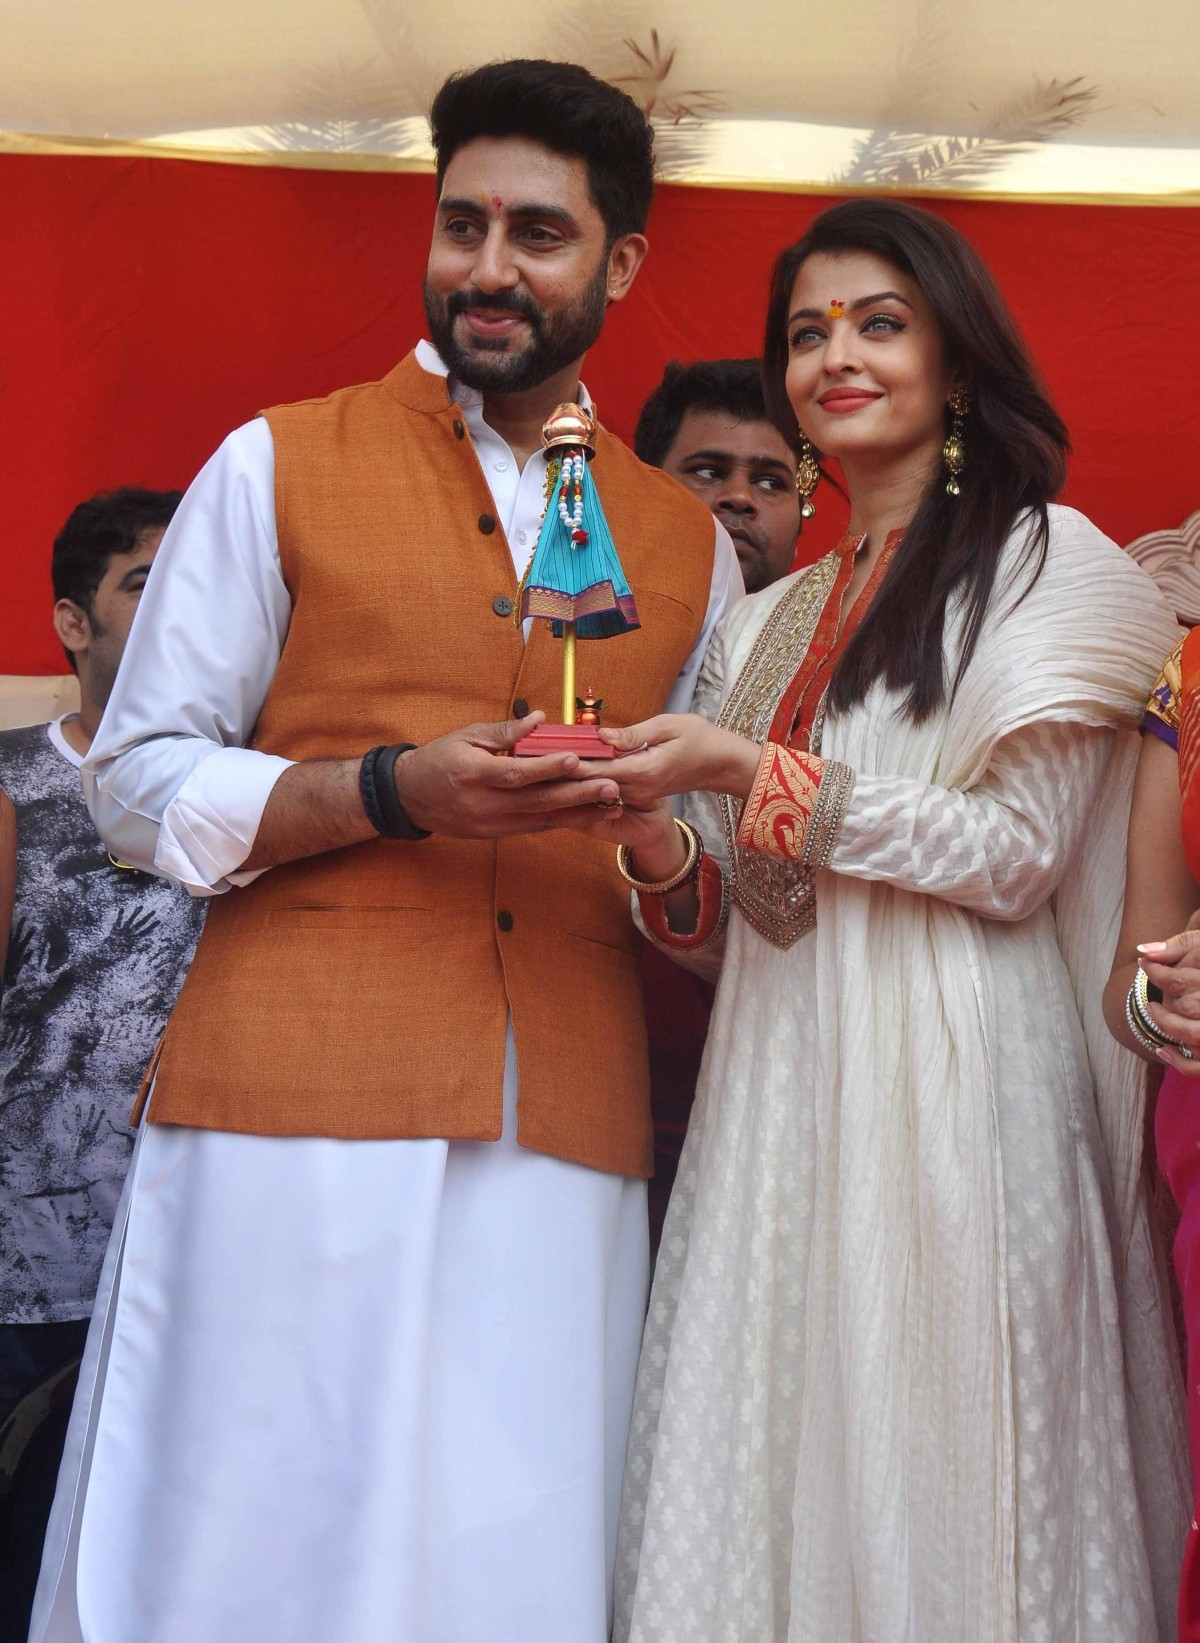 Aishwarya Rai Bachchan Celebrates 'Gudi Padwa' with Abhishek Bachchan; Couple Looks Stunning Together